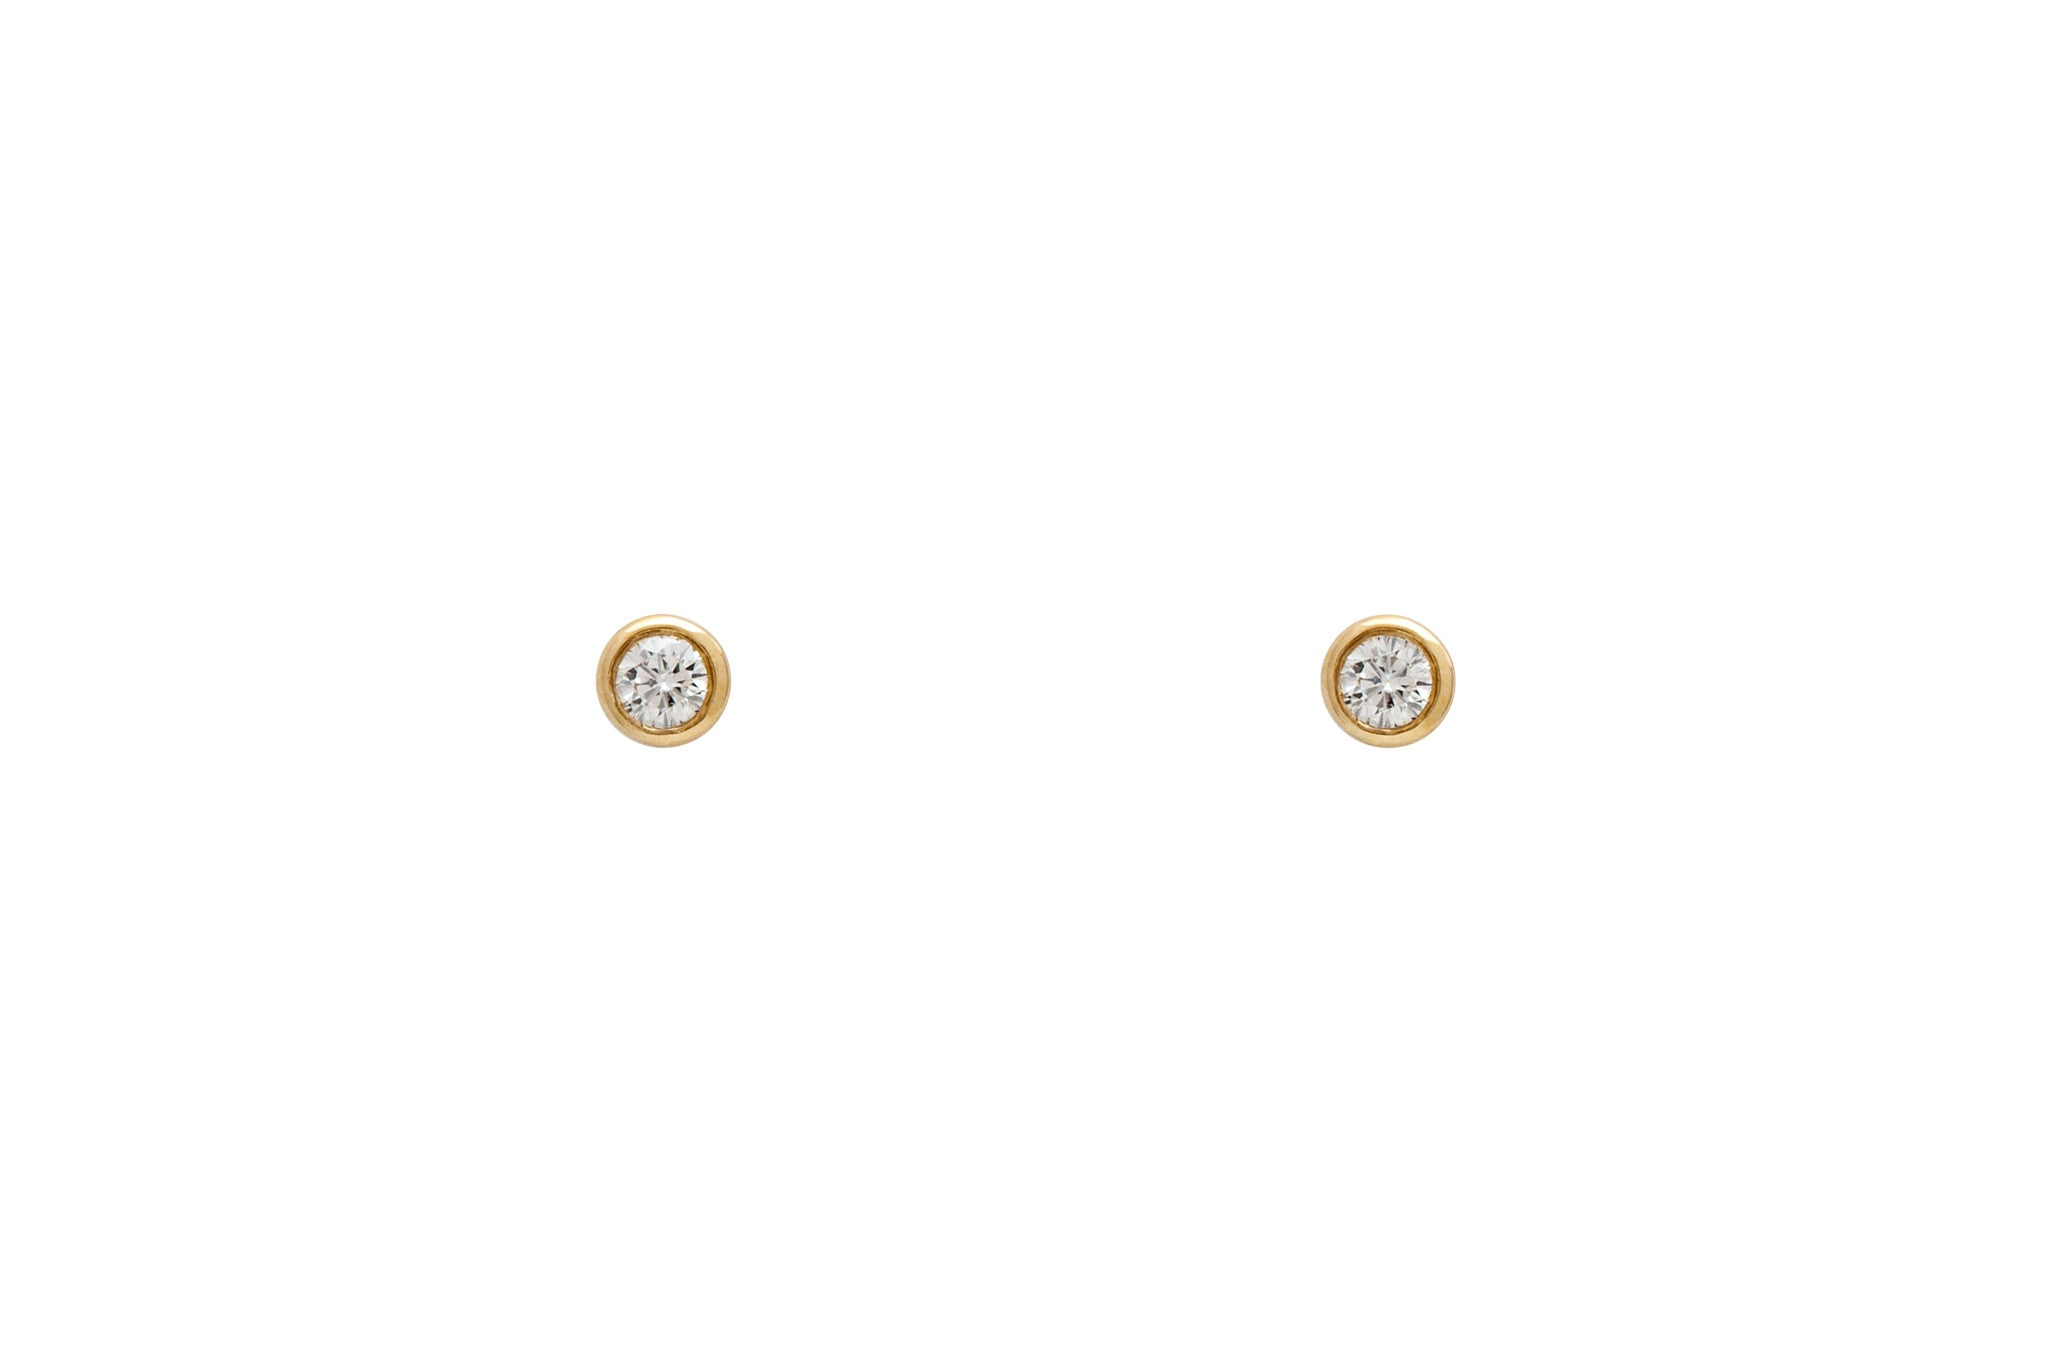 14k Gold Genuine Diamond Bezel Set Stud Earrings E2224